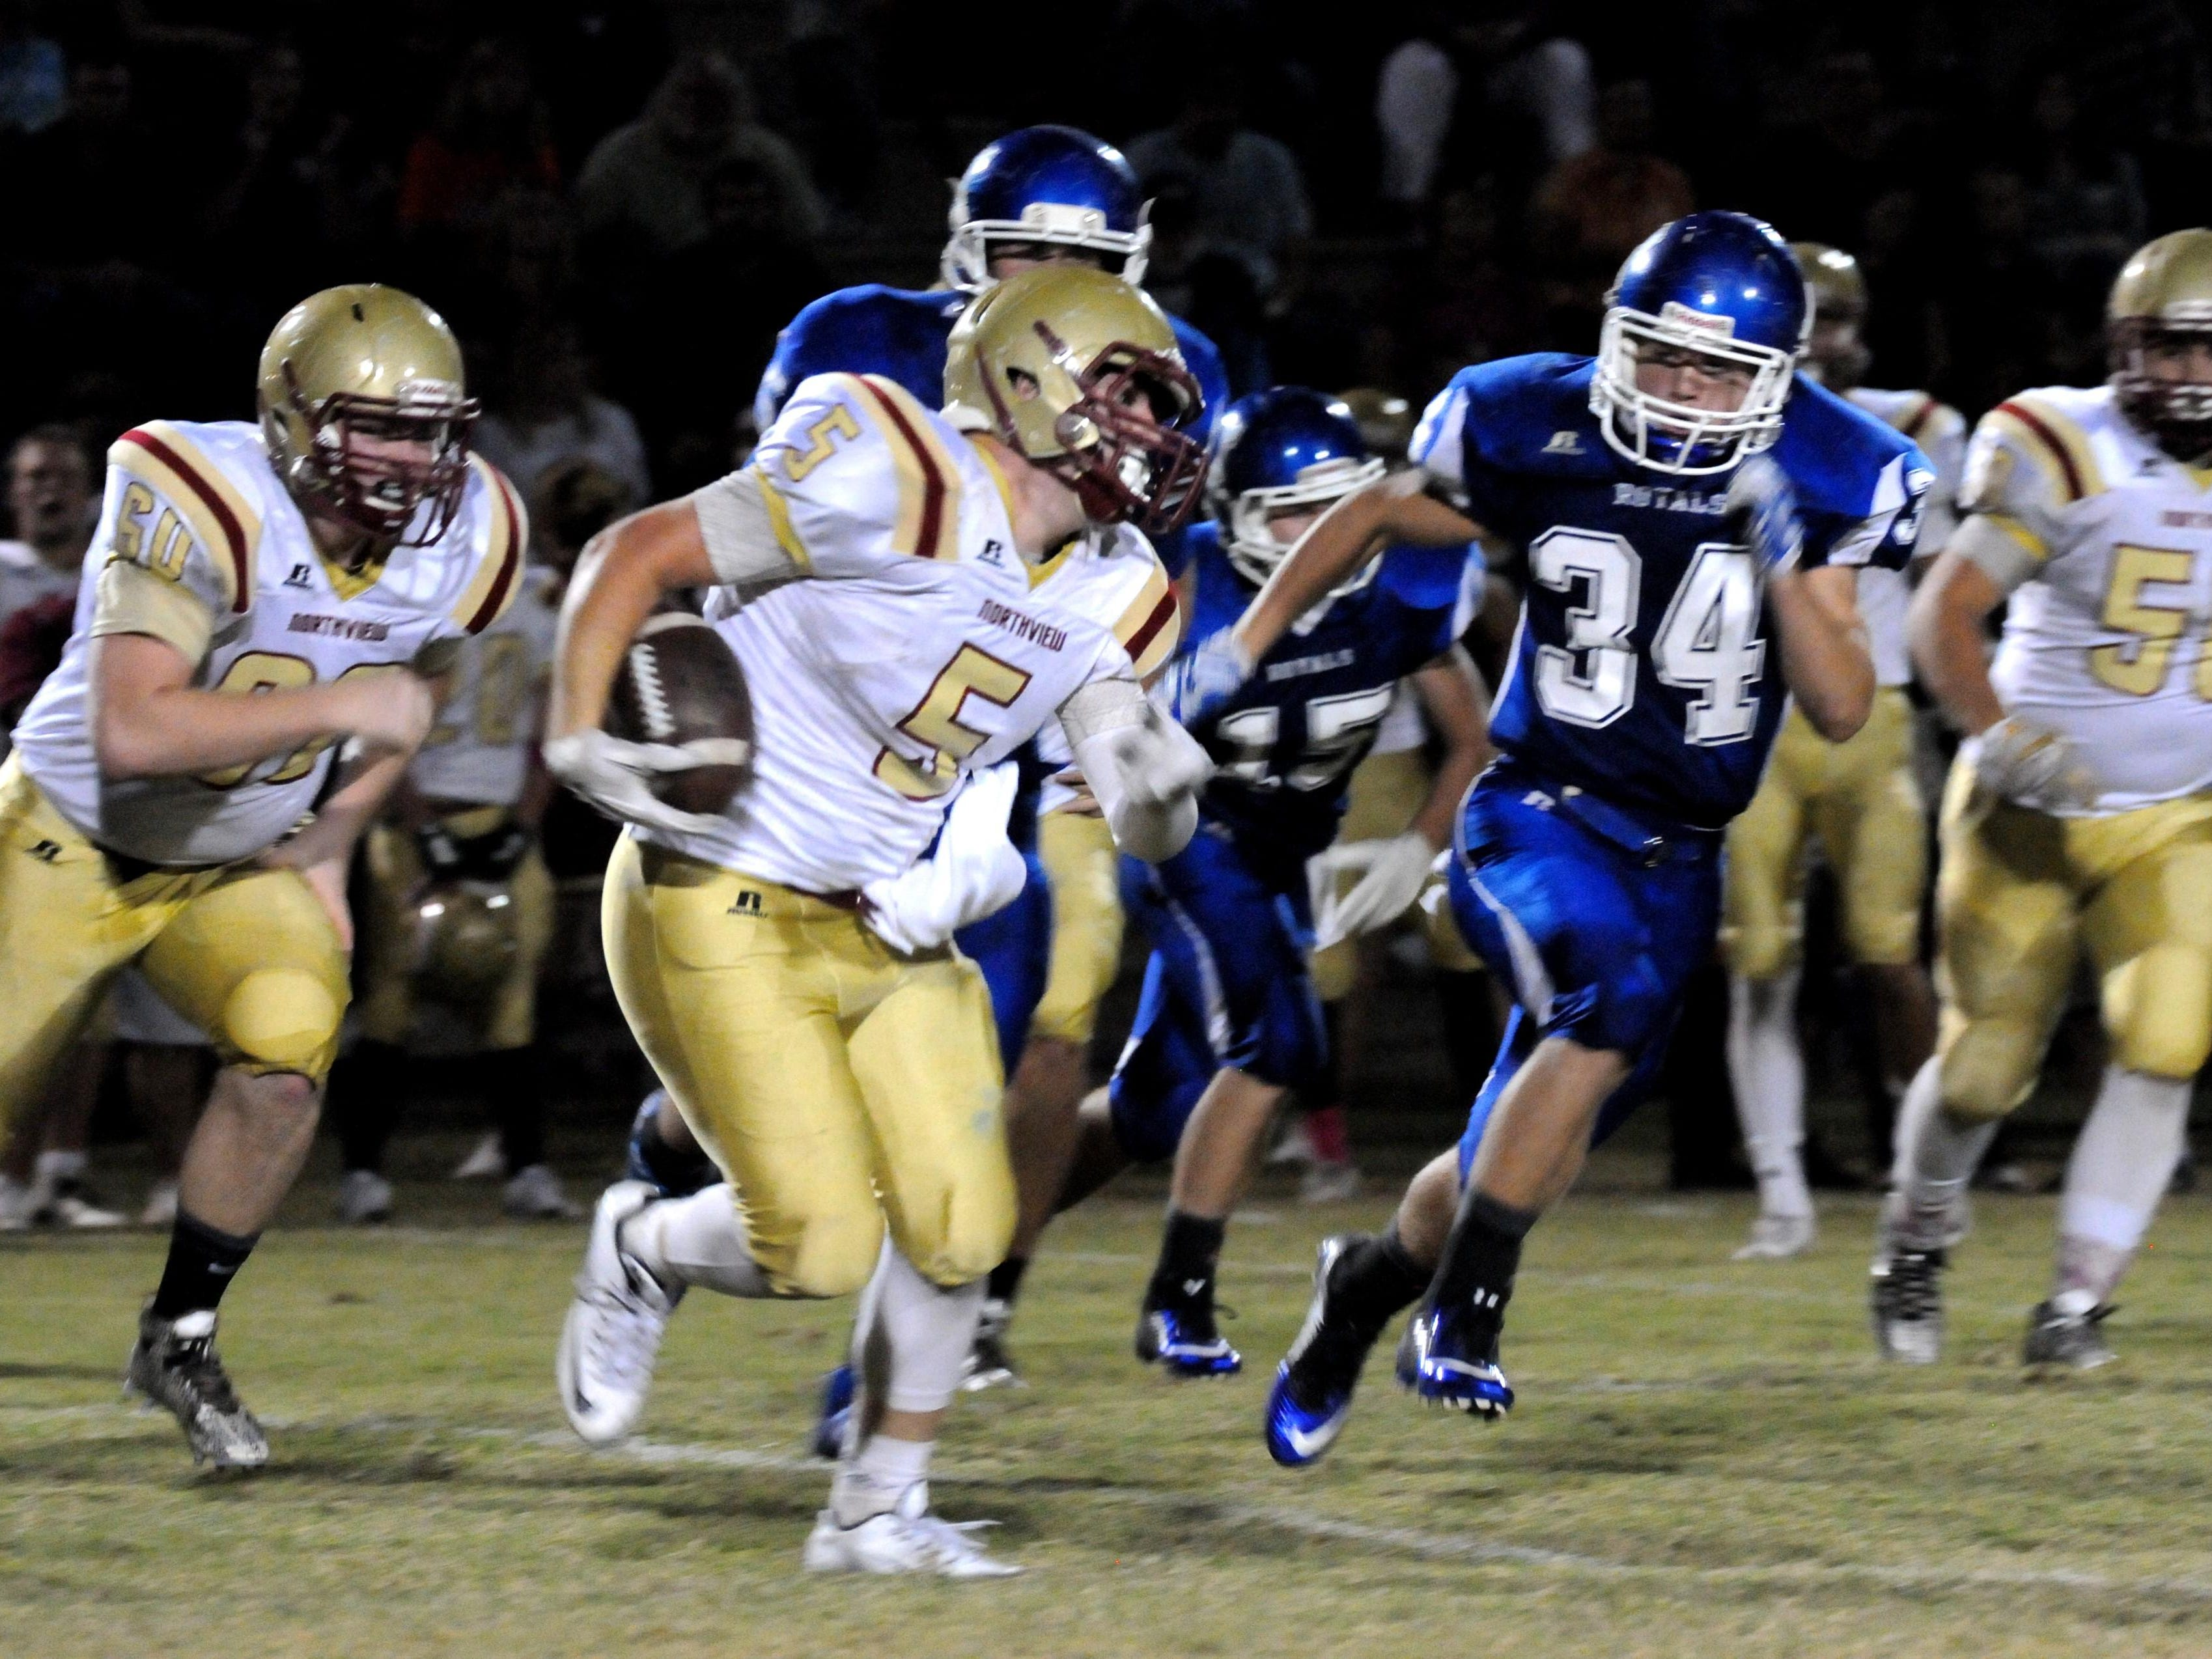 The Chiefs will host the Baker Gators on Oct. 30 for a winner-take-all game with the District 1-A title on the line.